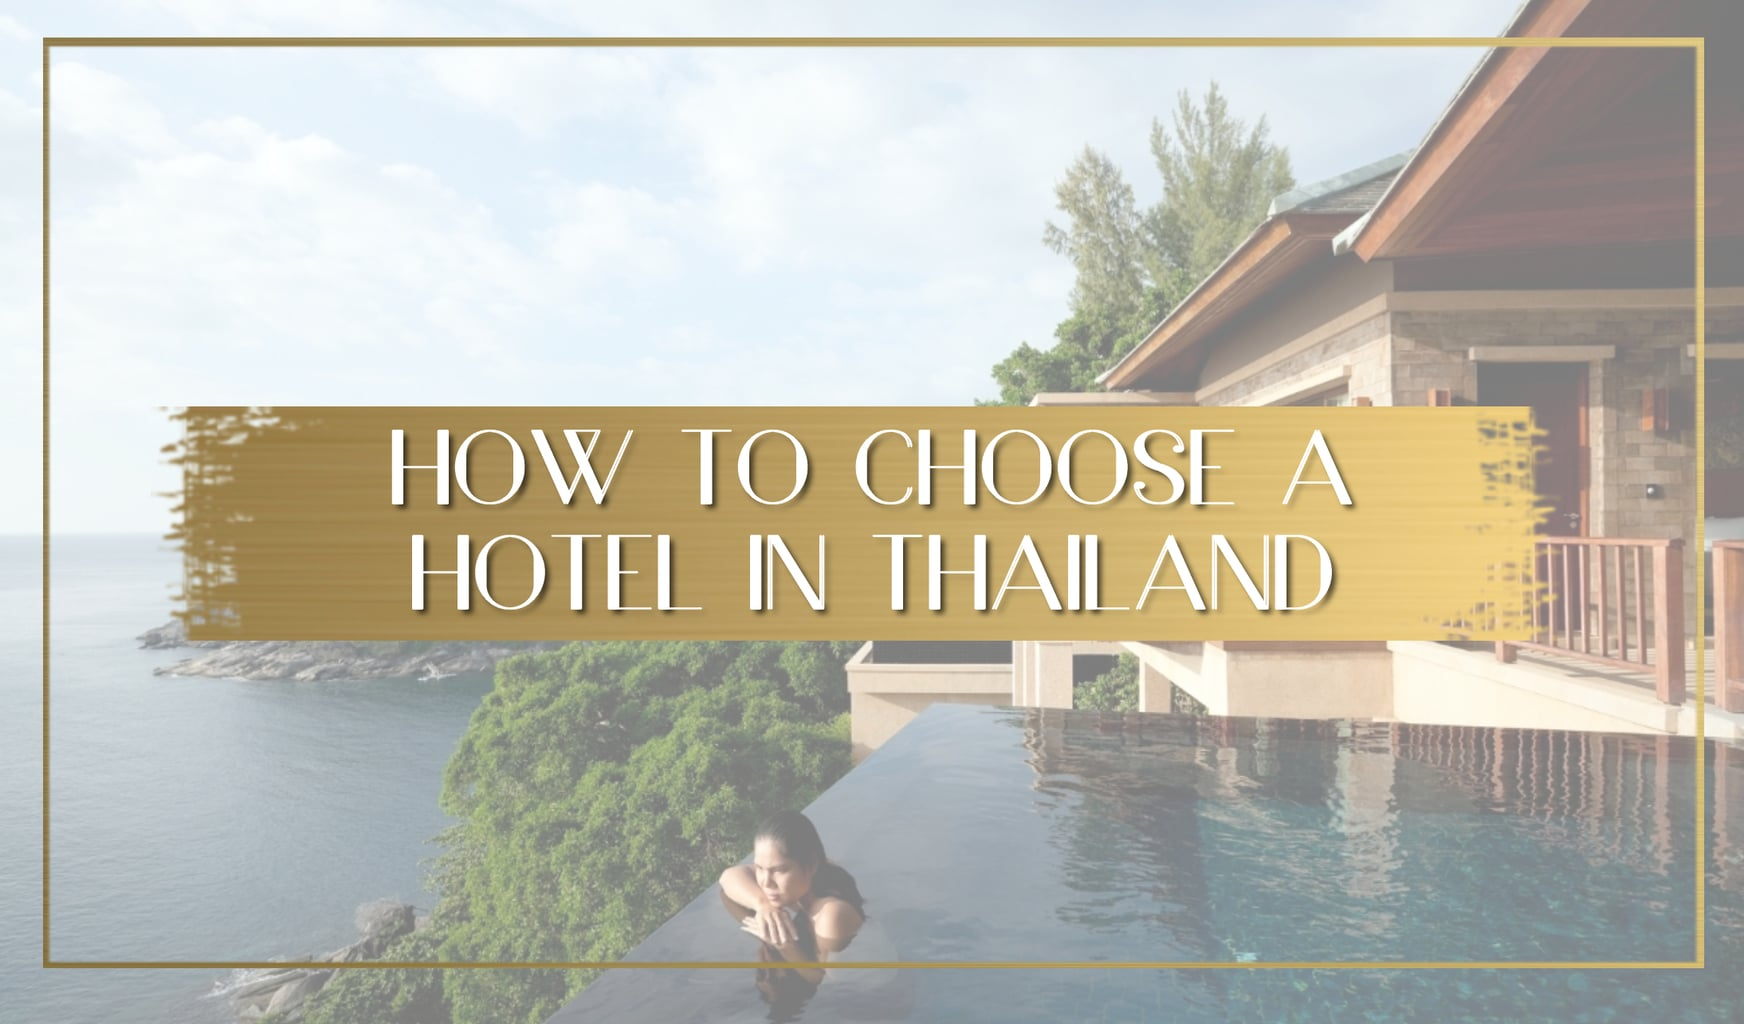 How to choose a hotel in Thailand main